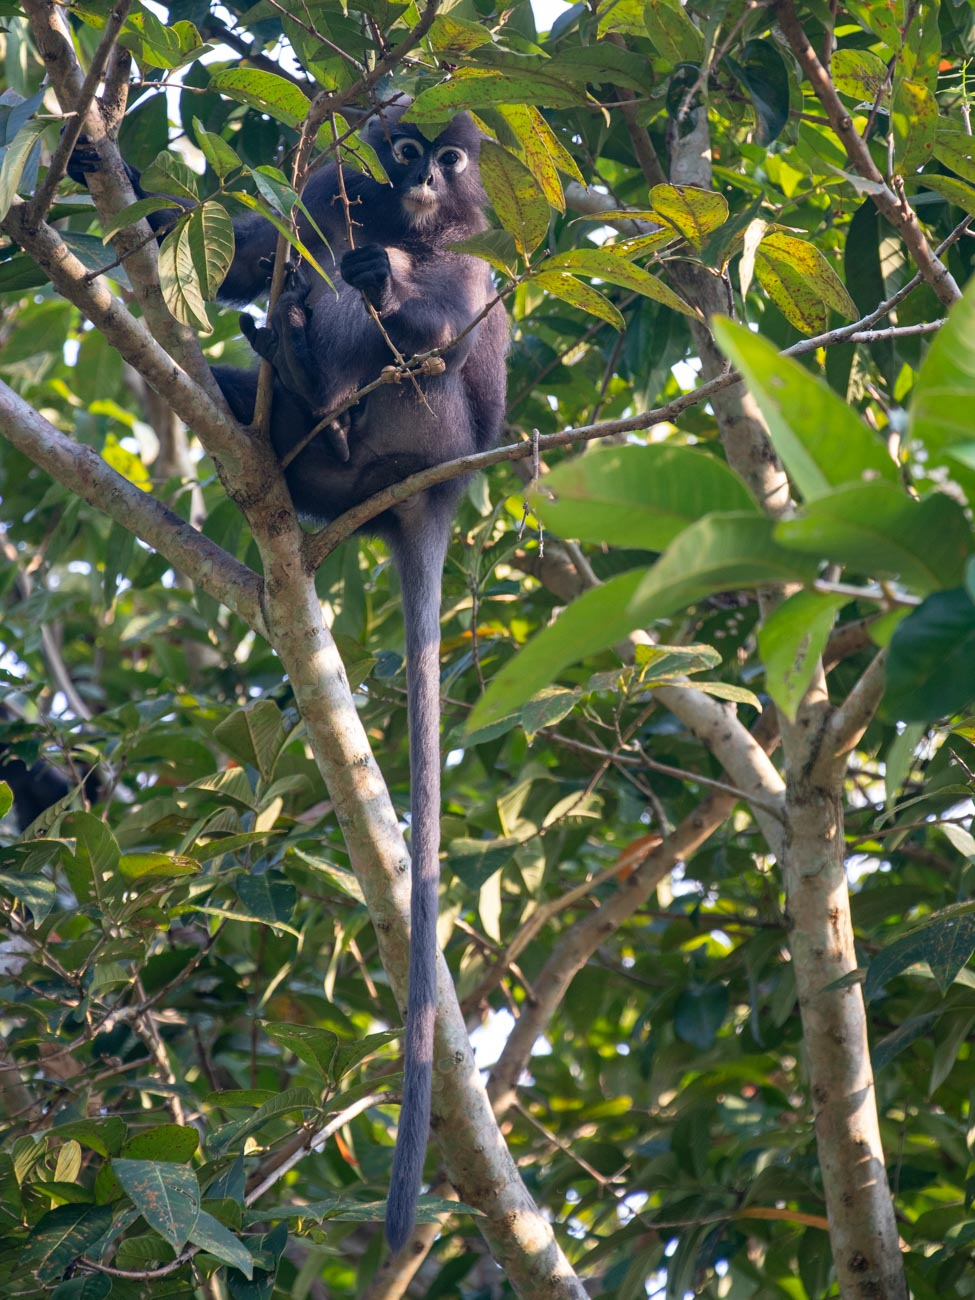 Dusky Leaf Monkey on Penang Hill- Things to see and do in Penang